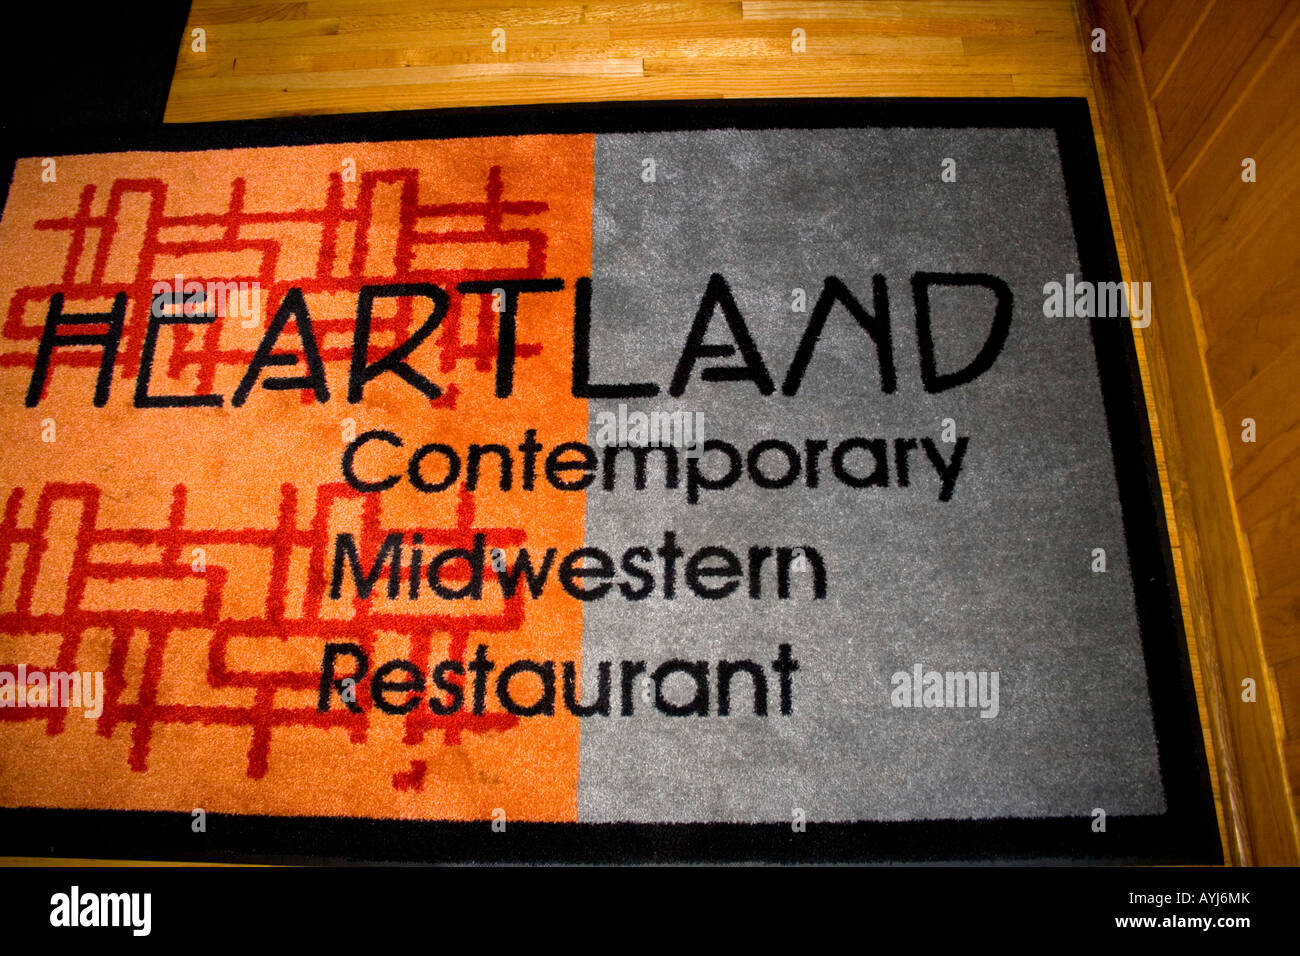 Floor mat at entrance to Heartland Contemporary Midwestern Restaurant. St Paul Minnesota USA Stock Photo